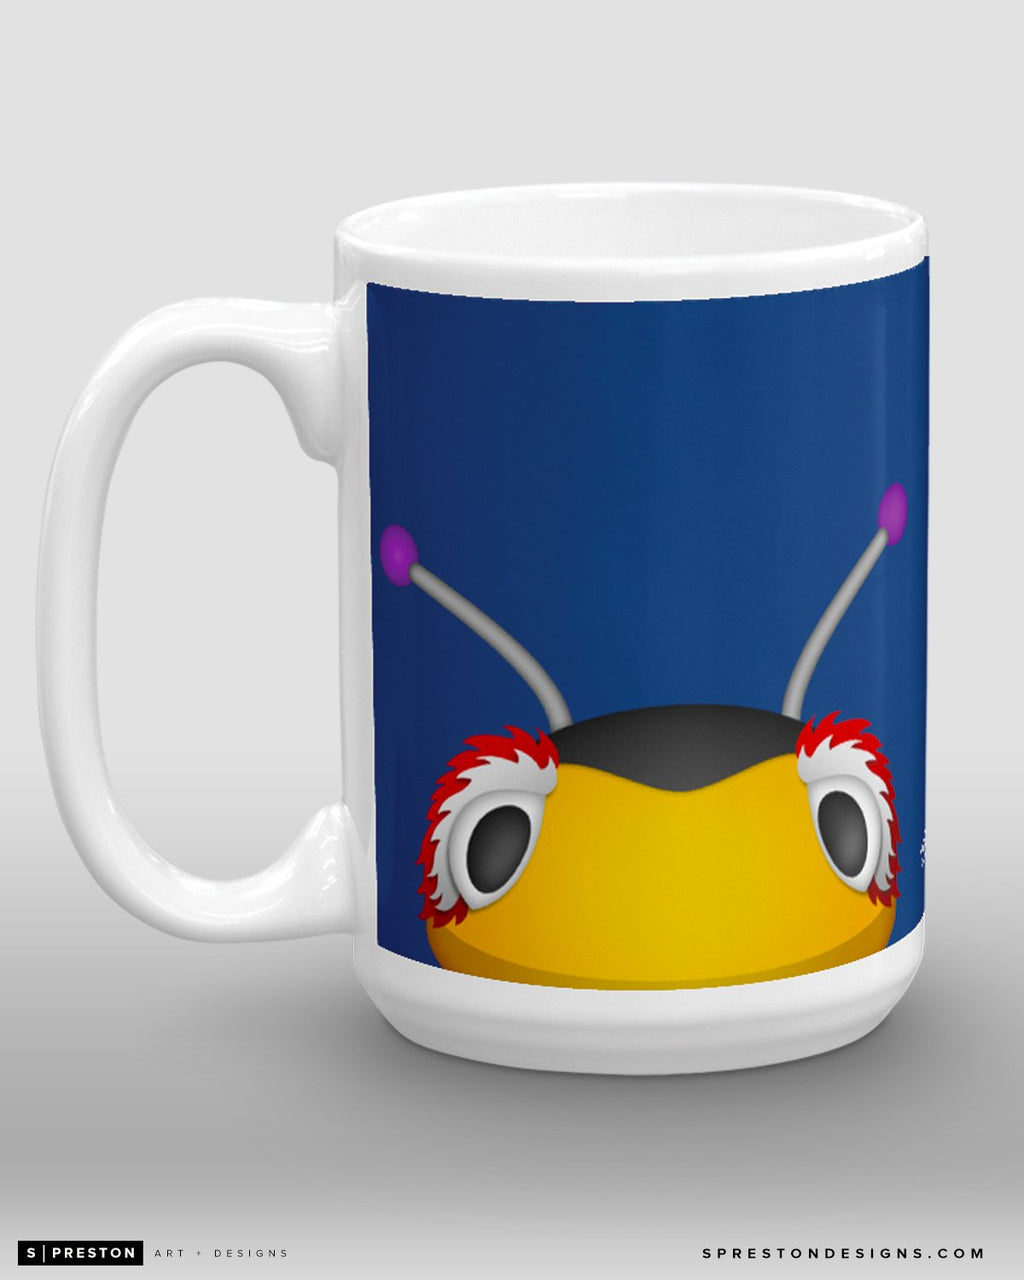 Minimalist Thunderbug Coffee Mug - NHL Licensed - Tampa Bay Lightning Mascot